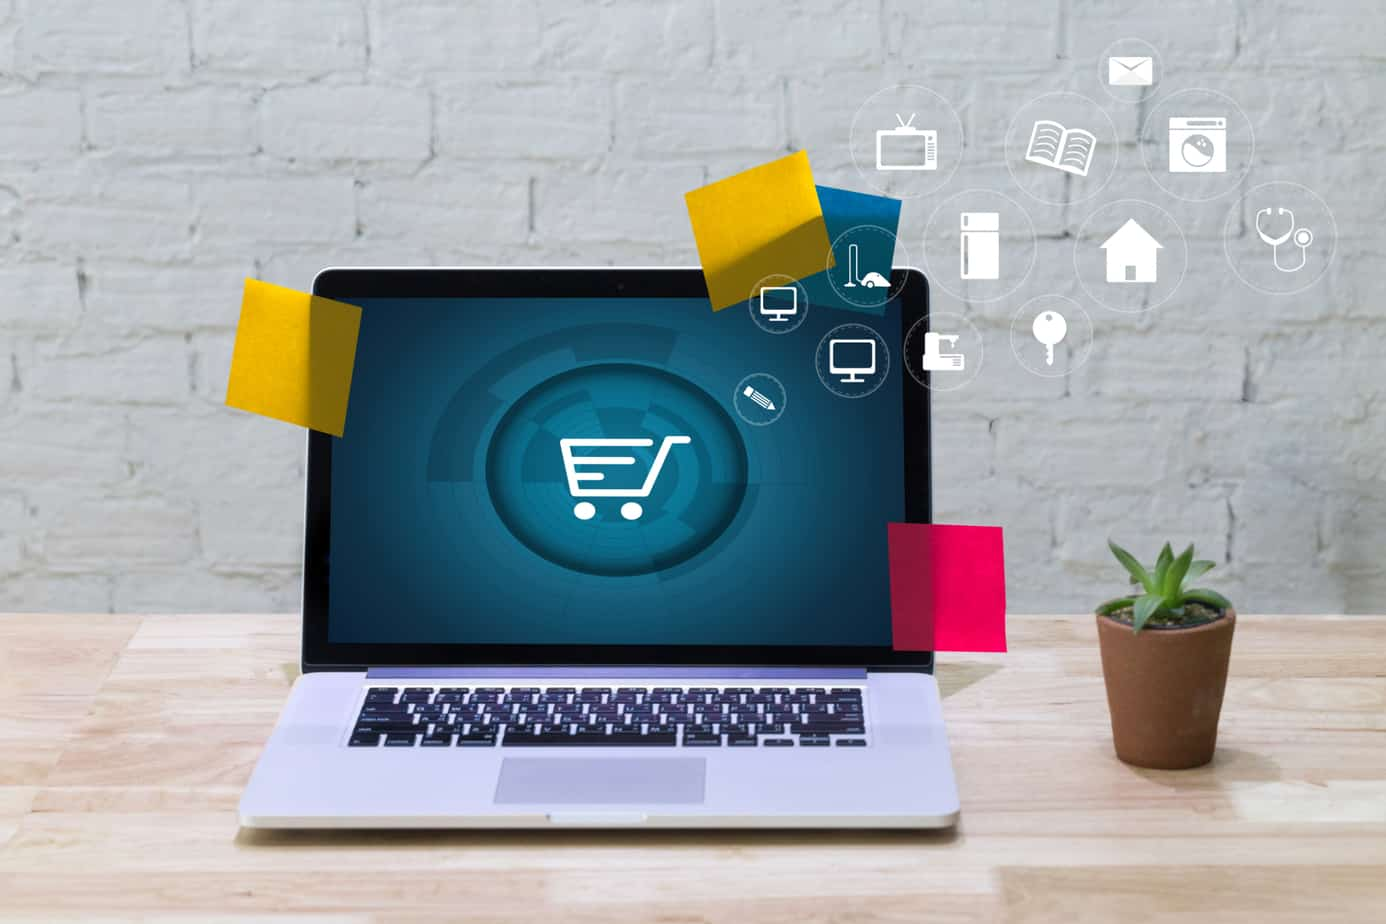 Business People Use Technology Ecommerce Internet Global Marketing Purchasing Plan And Bank Concept 97589476